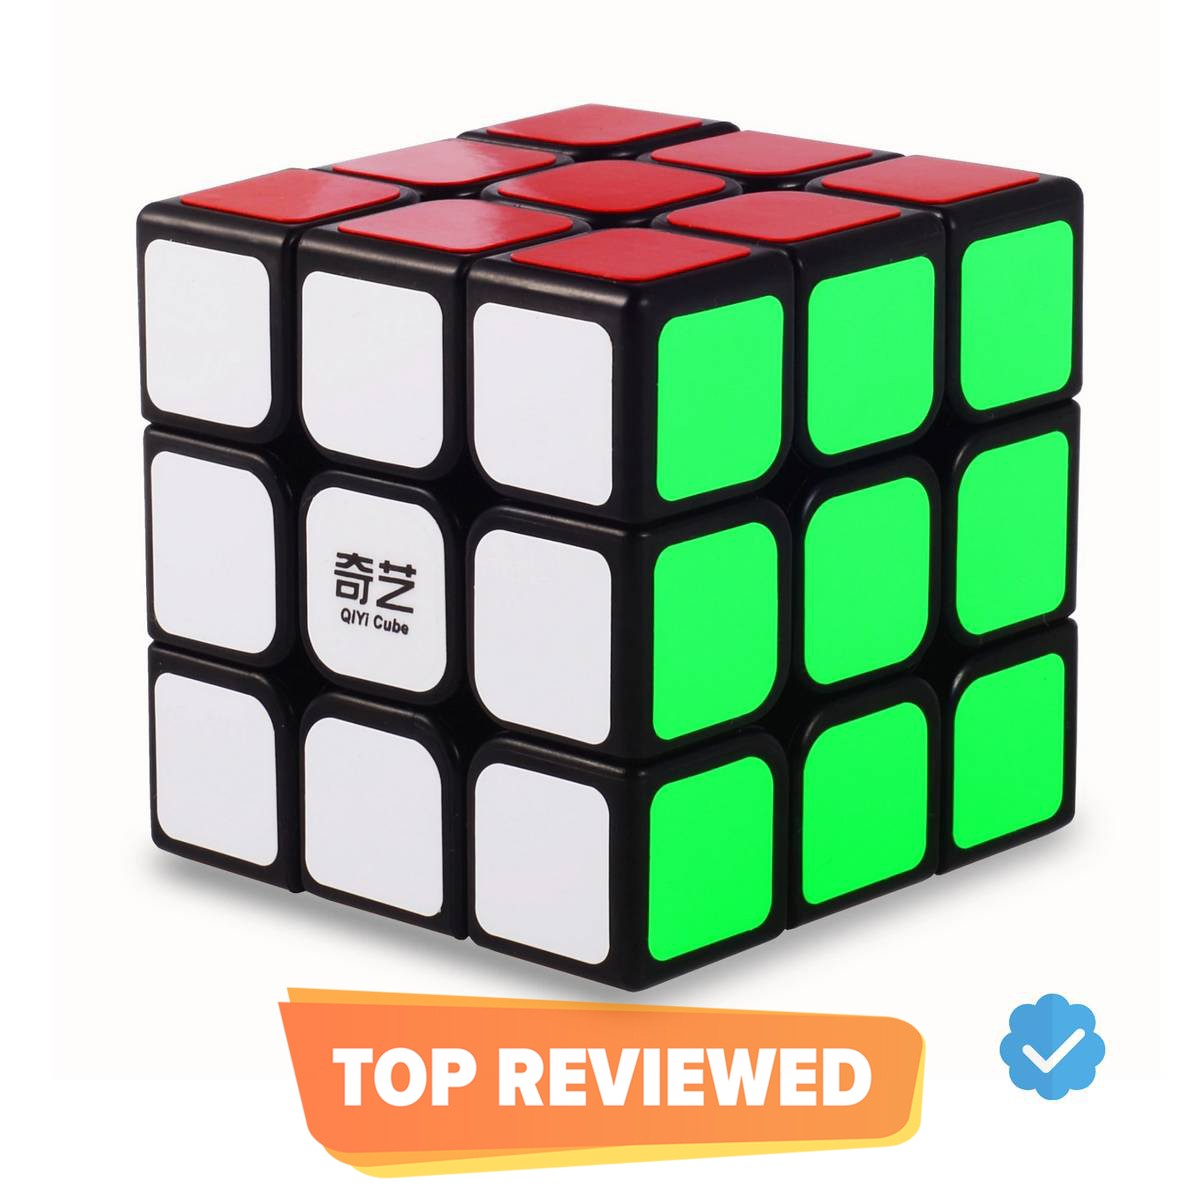 Qiyi Sail W Rubiks Cube 3x3- Smooth bright-light sticker(Classic colors) Speed Cube - 3x3x3 Puzzles Toys, The Most Educational Toy to Effectively Improve Children's Concentration and responsiveness - Rubik's Cube